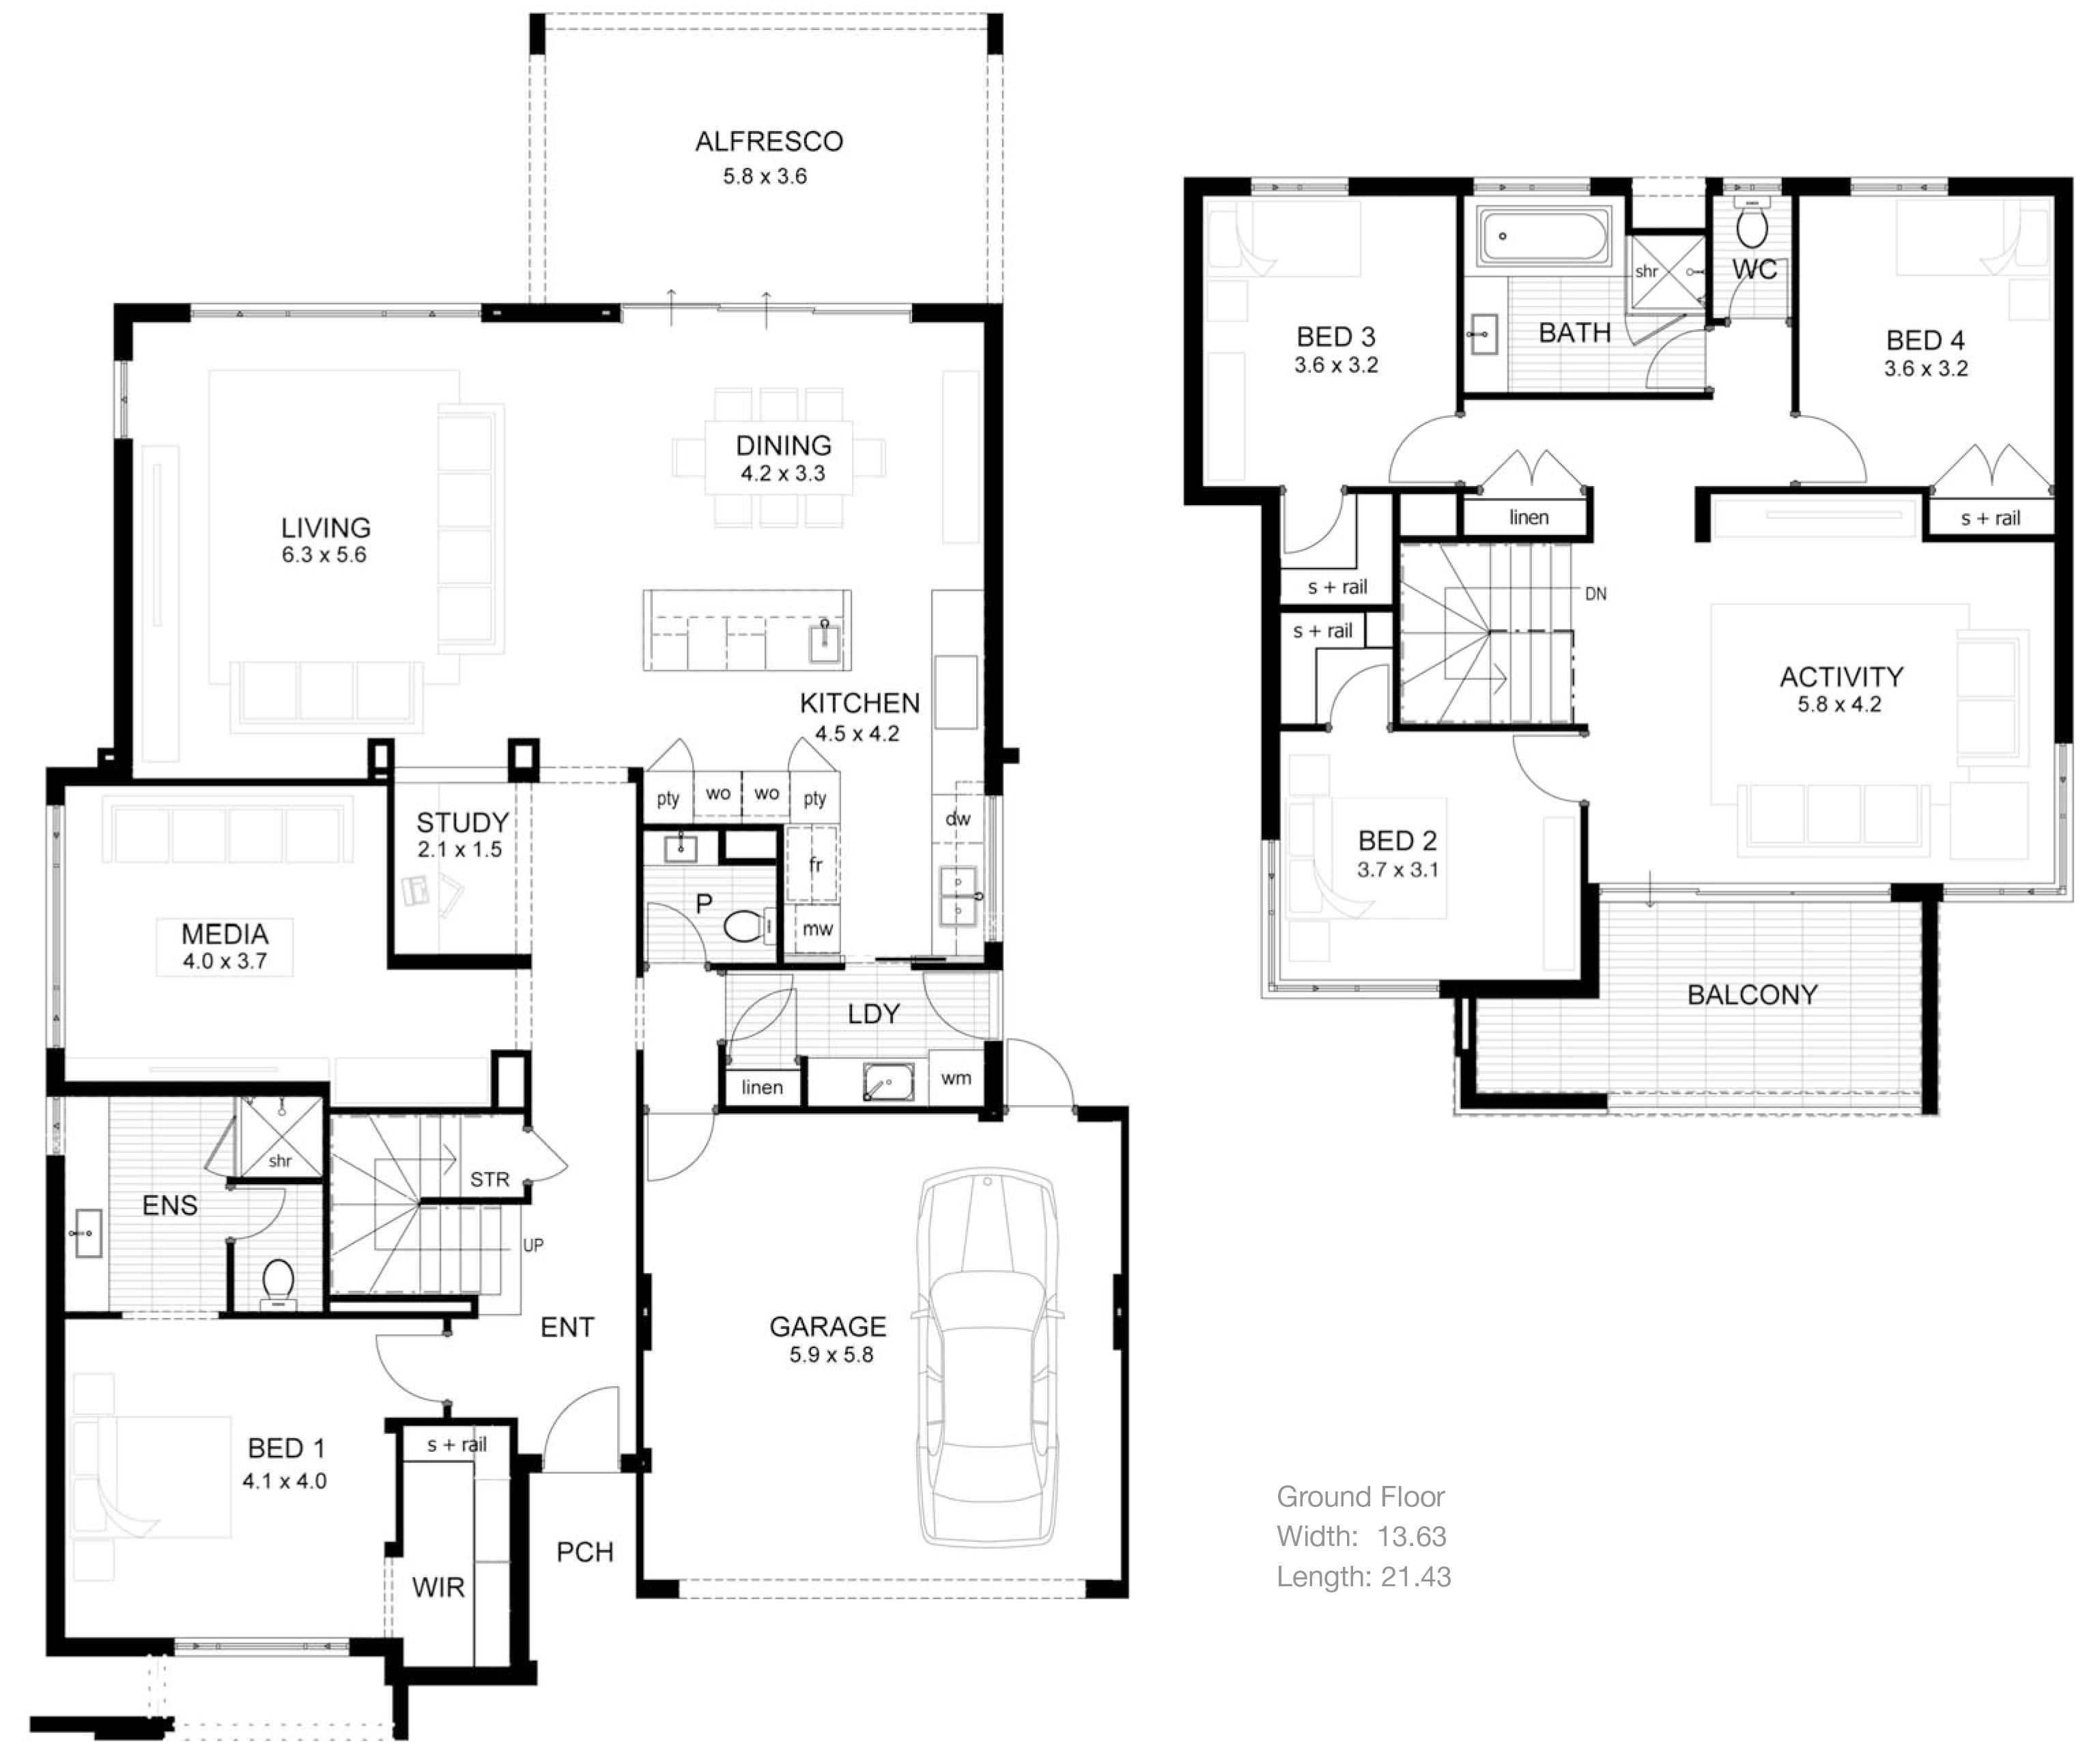 House And Land Packages In Perth Single And Double Storey APG